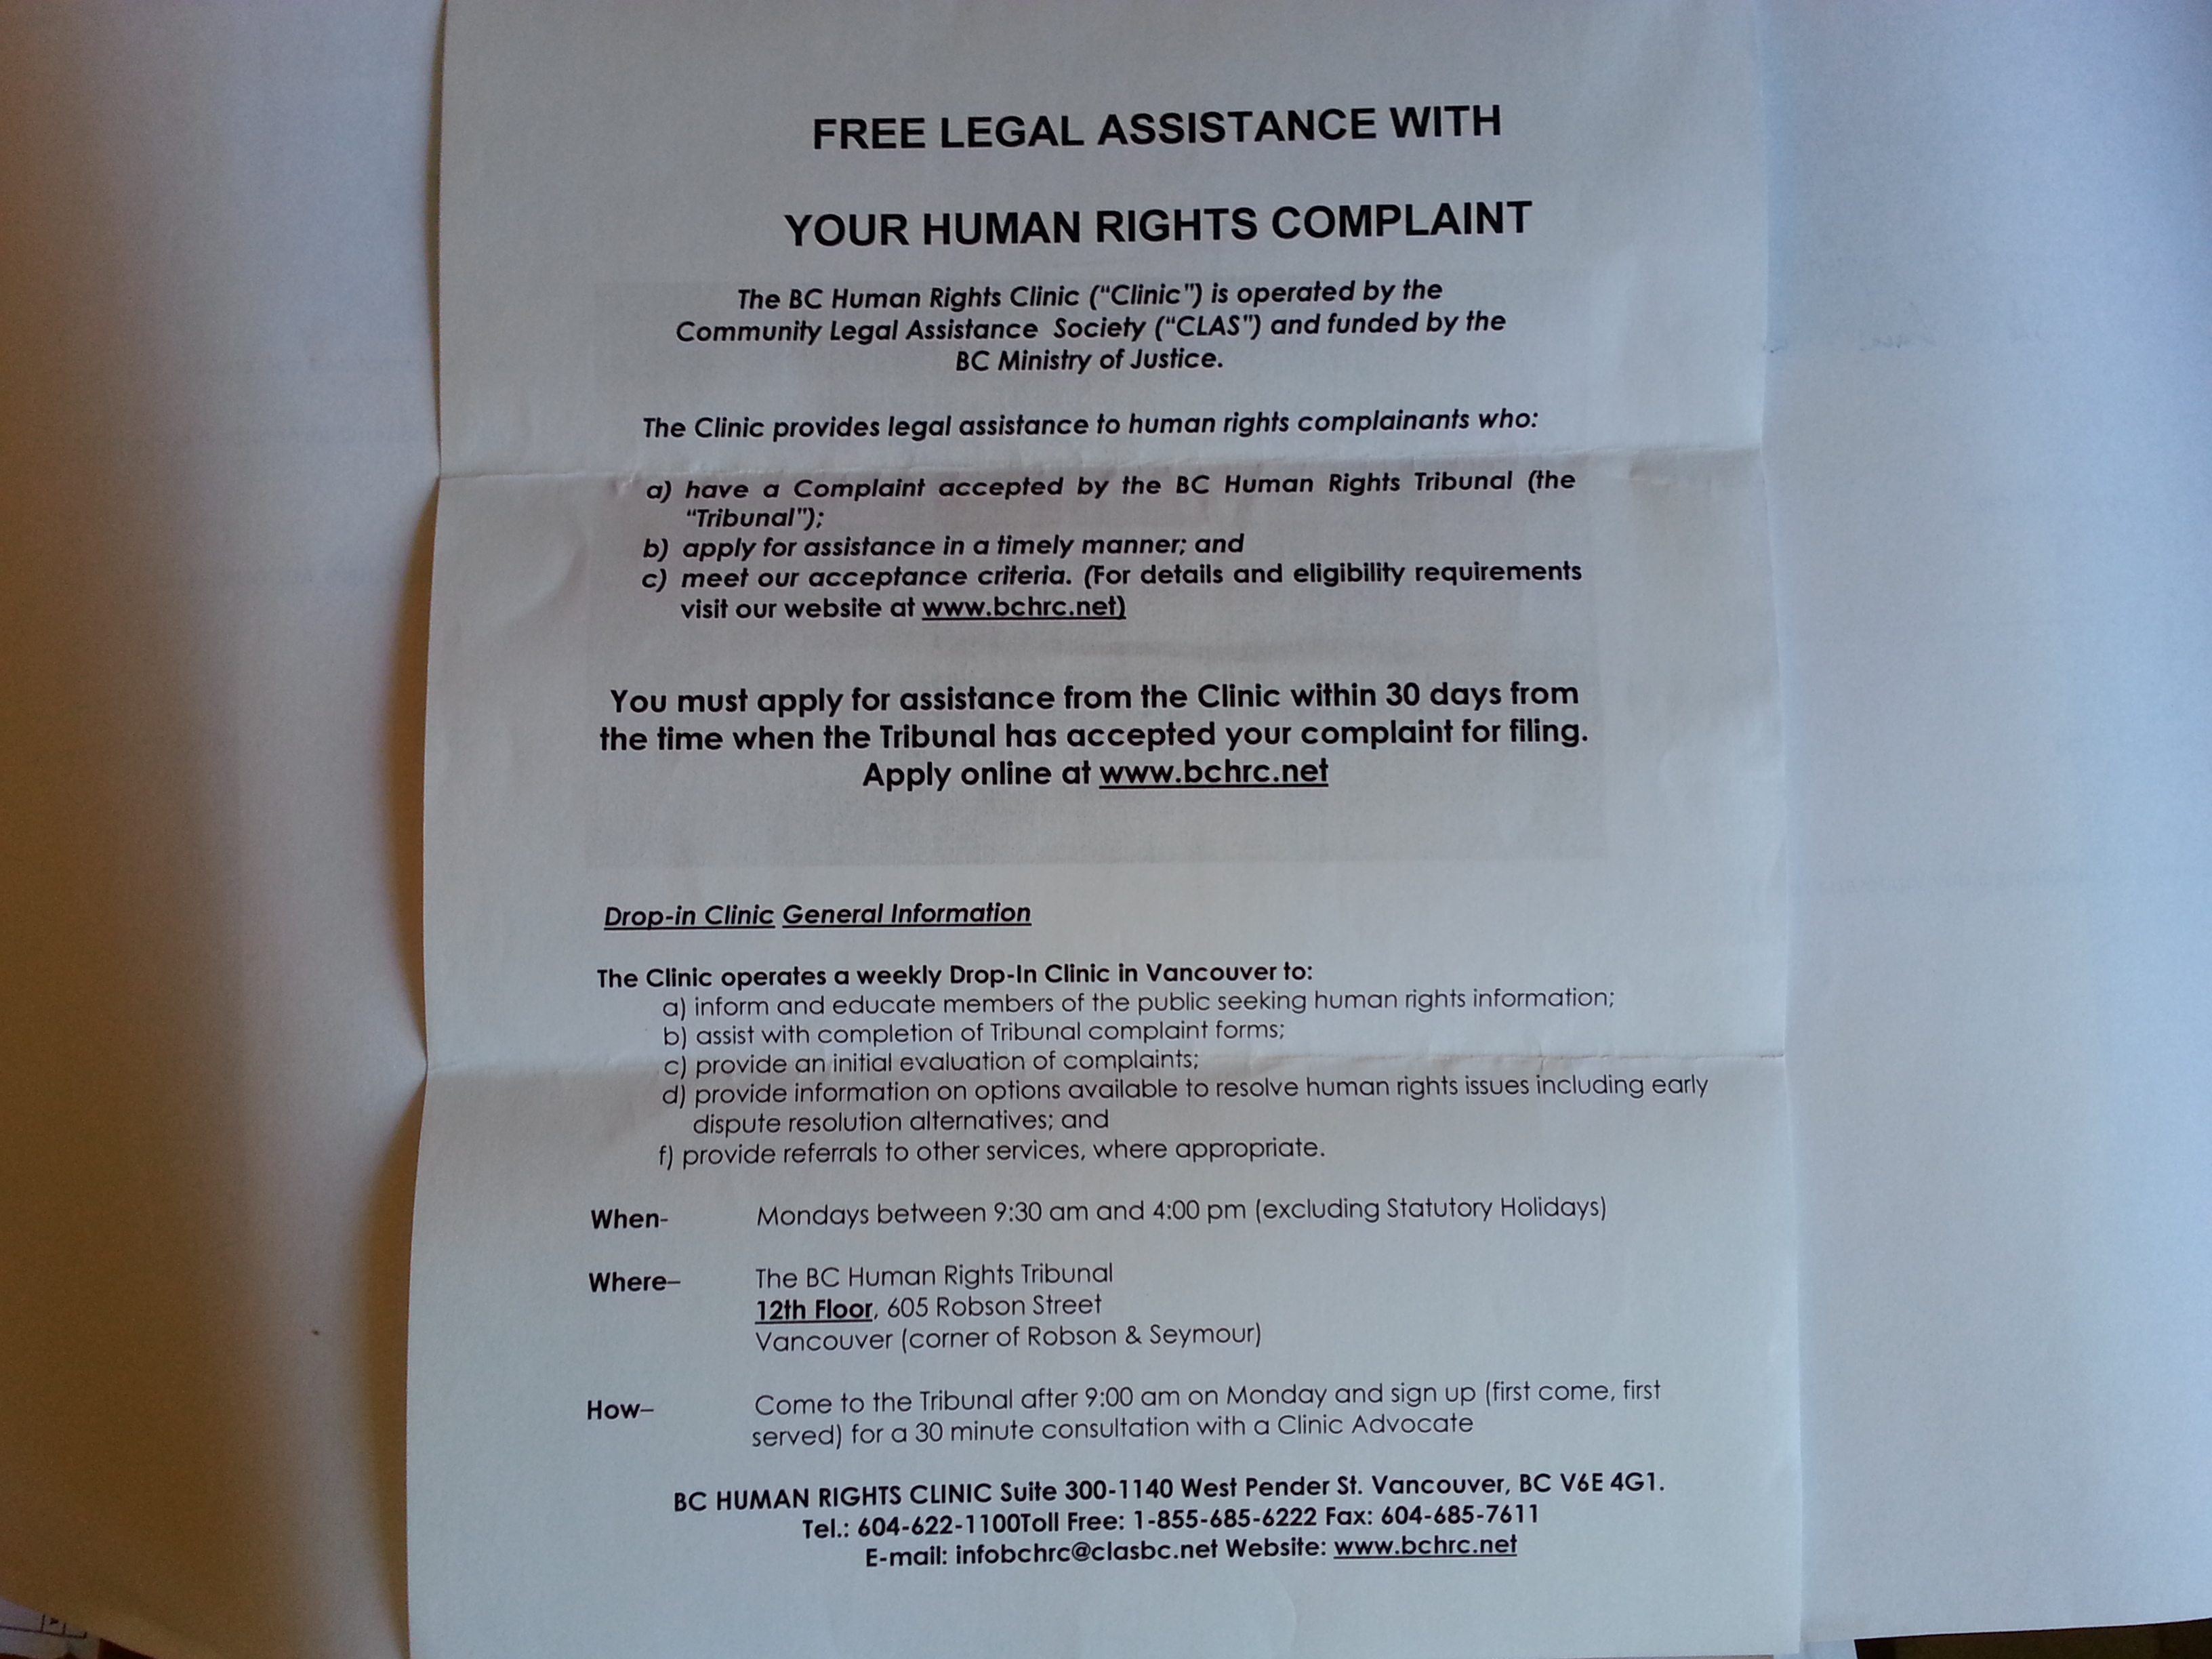 20160920_free-legal-assistance